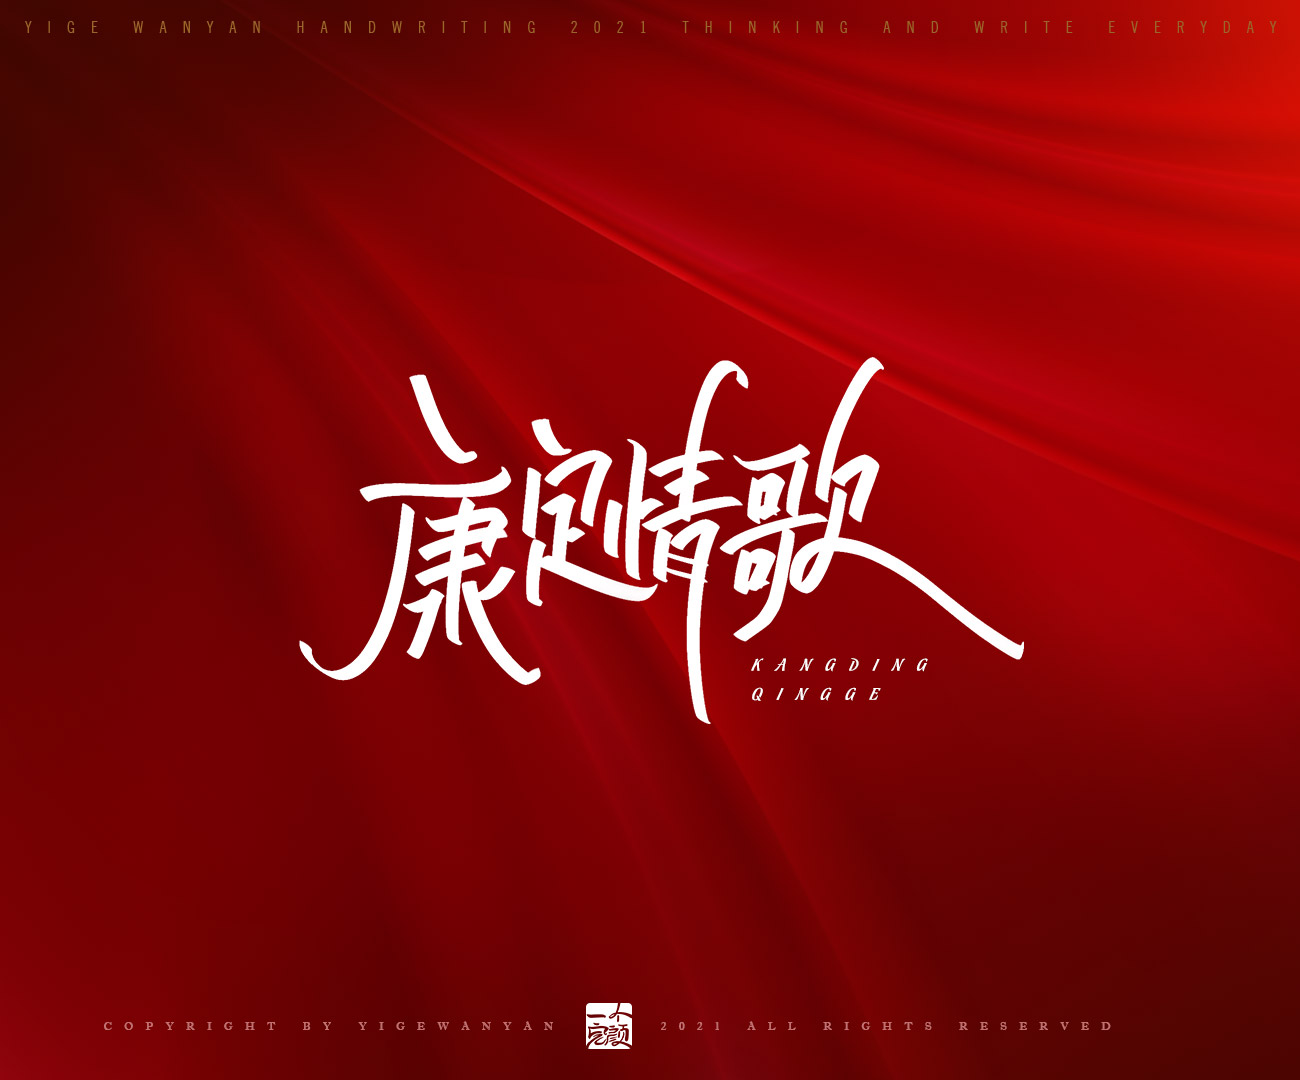 12P Collection of the latest Chinese font design schemes in 2021 #.255